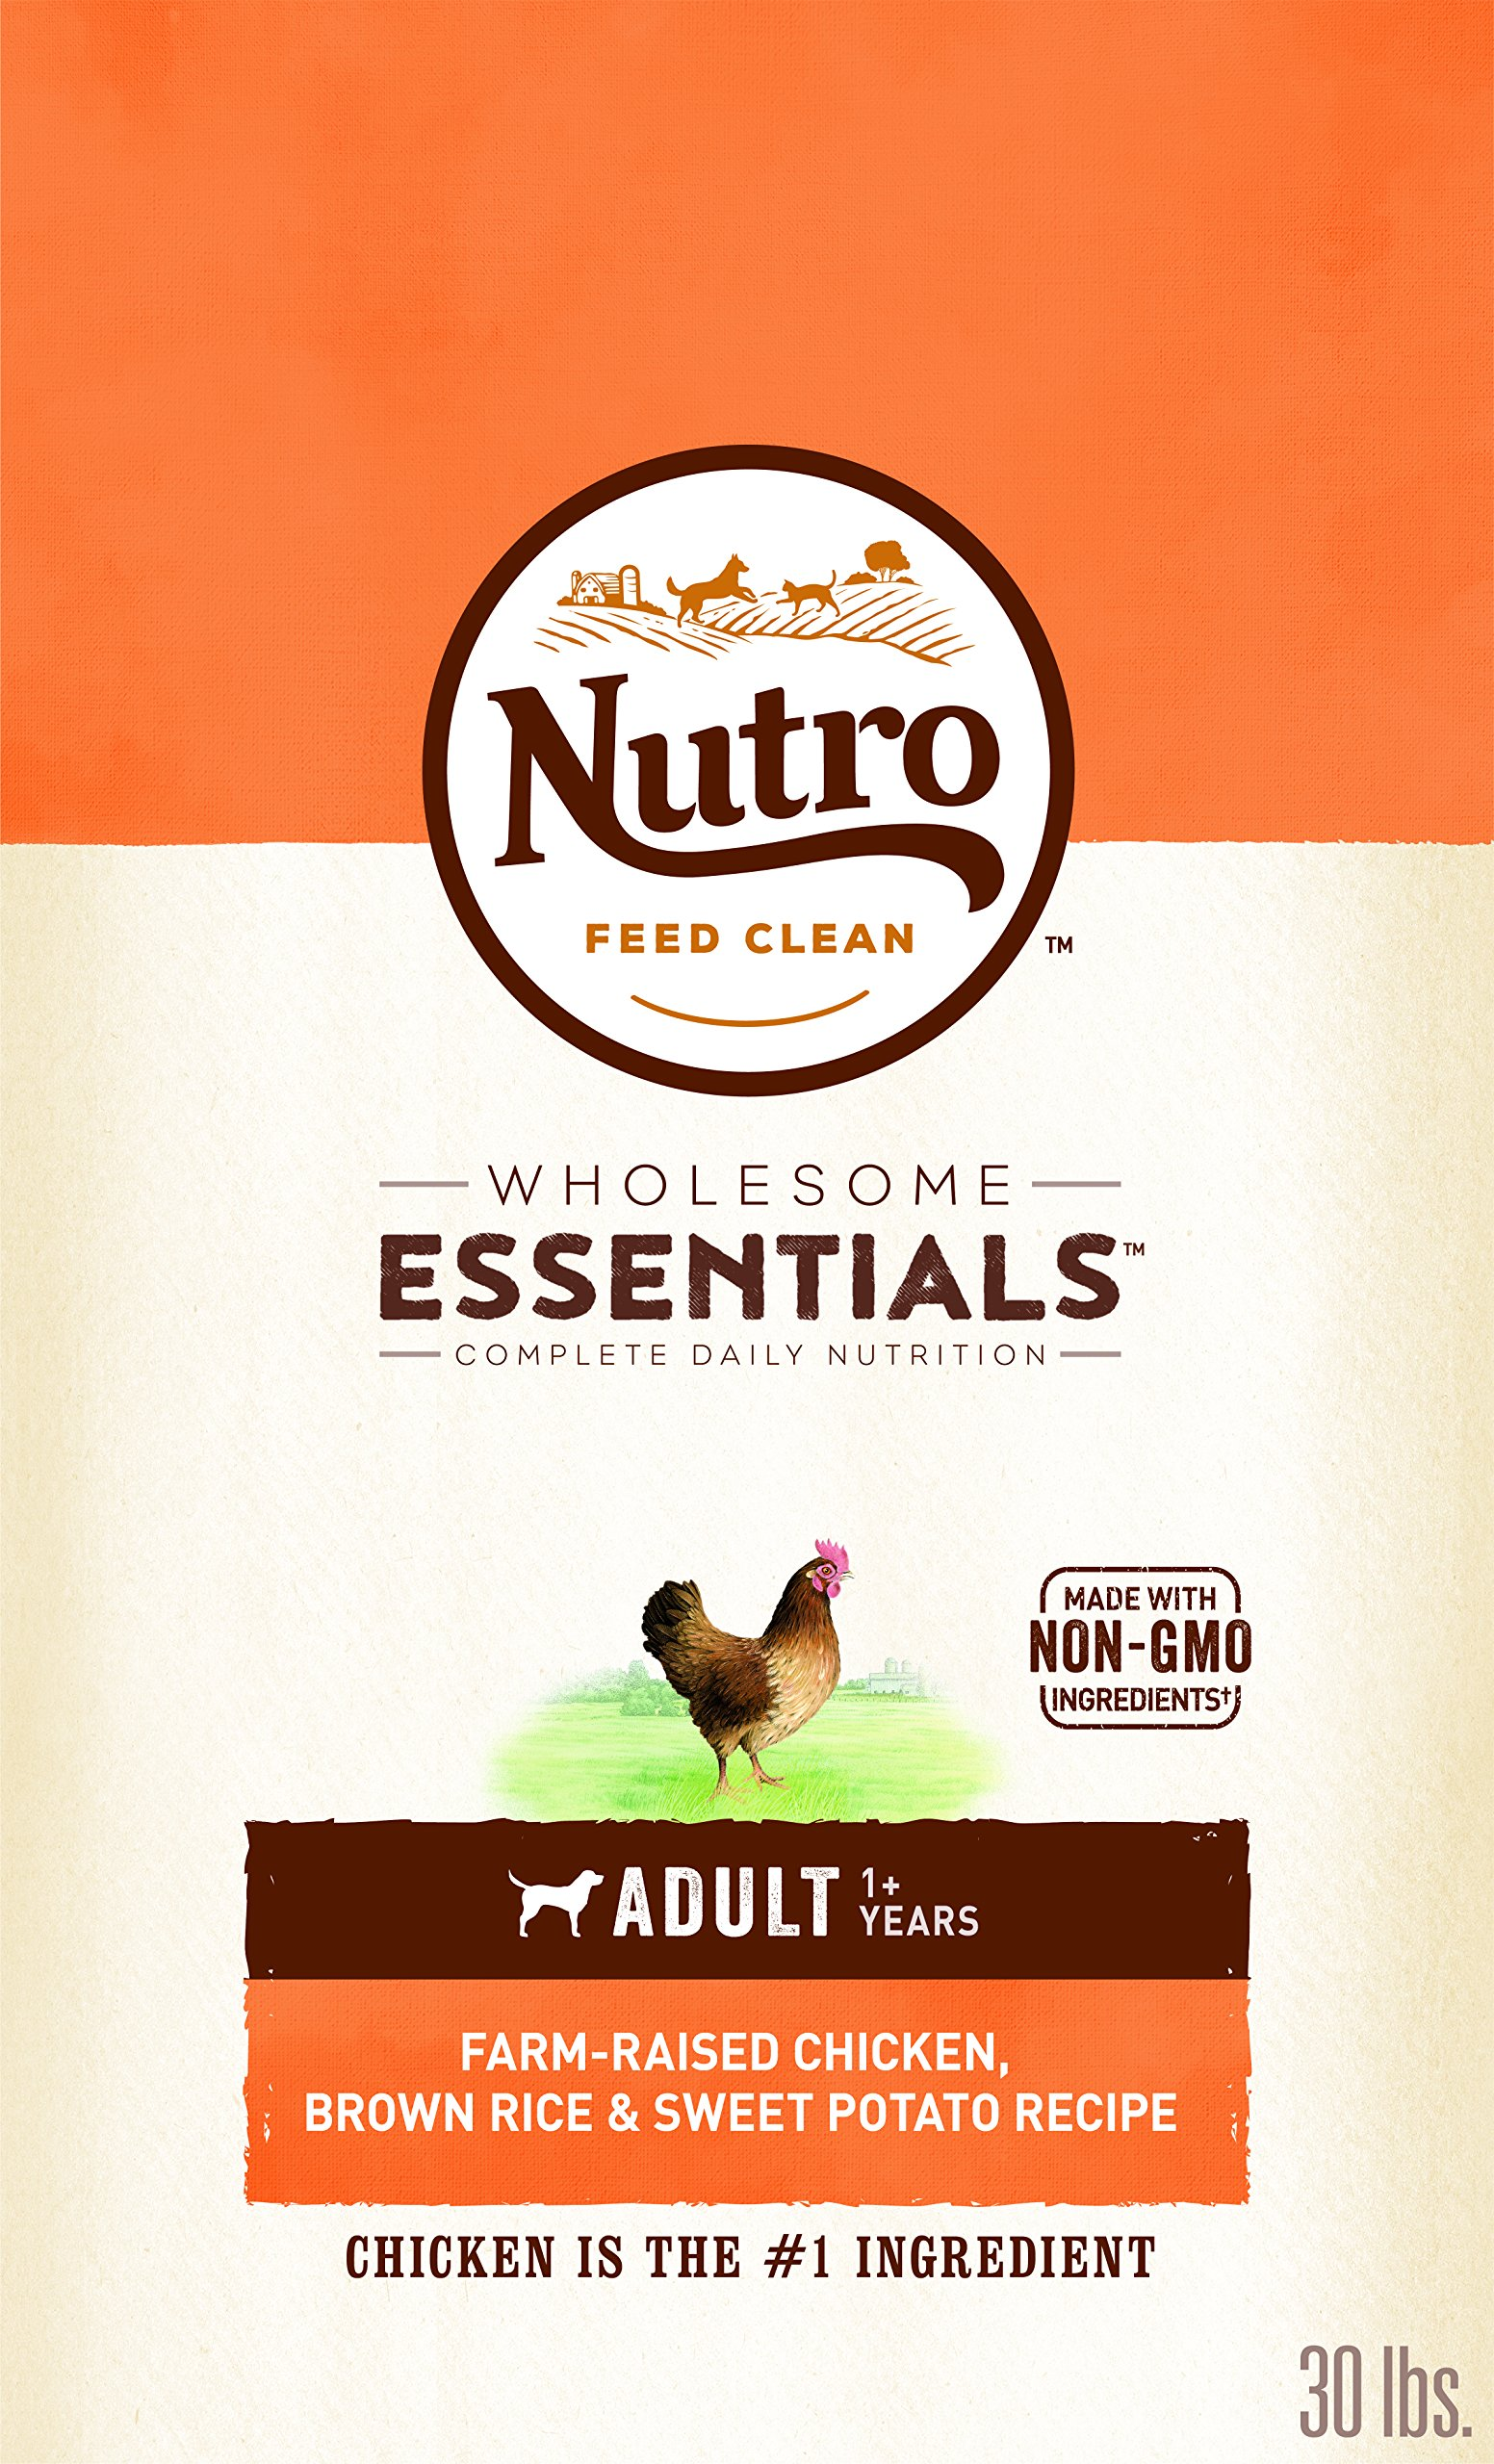 NUTRO WHOLESOME ESSENTIALS Natural Adult Dry Dog Food Farm-Raised Chicken, Brown Rice & Sweet Potato Recipe, 30 lb. Bag by Nutro